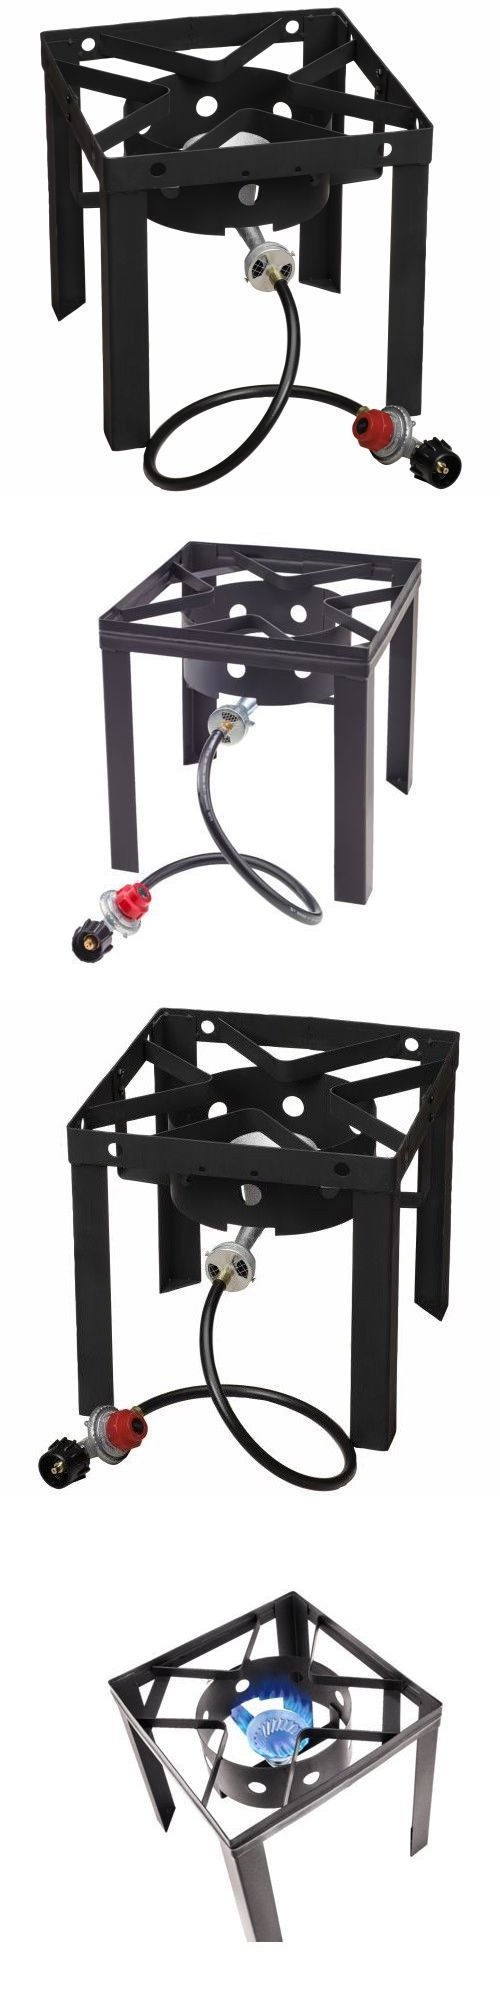 Other Camping Cooking Supplies 16036: Portable Stove Propane Single Gas Burner Fryer Stand Outdoor Cooking Camping Bbq BUY IT NOW ONLY: $54.99